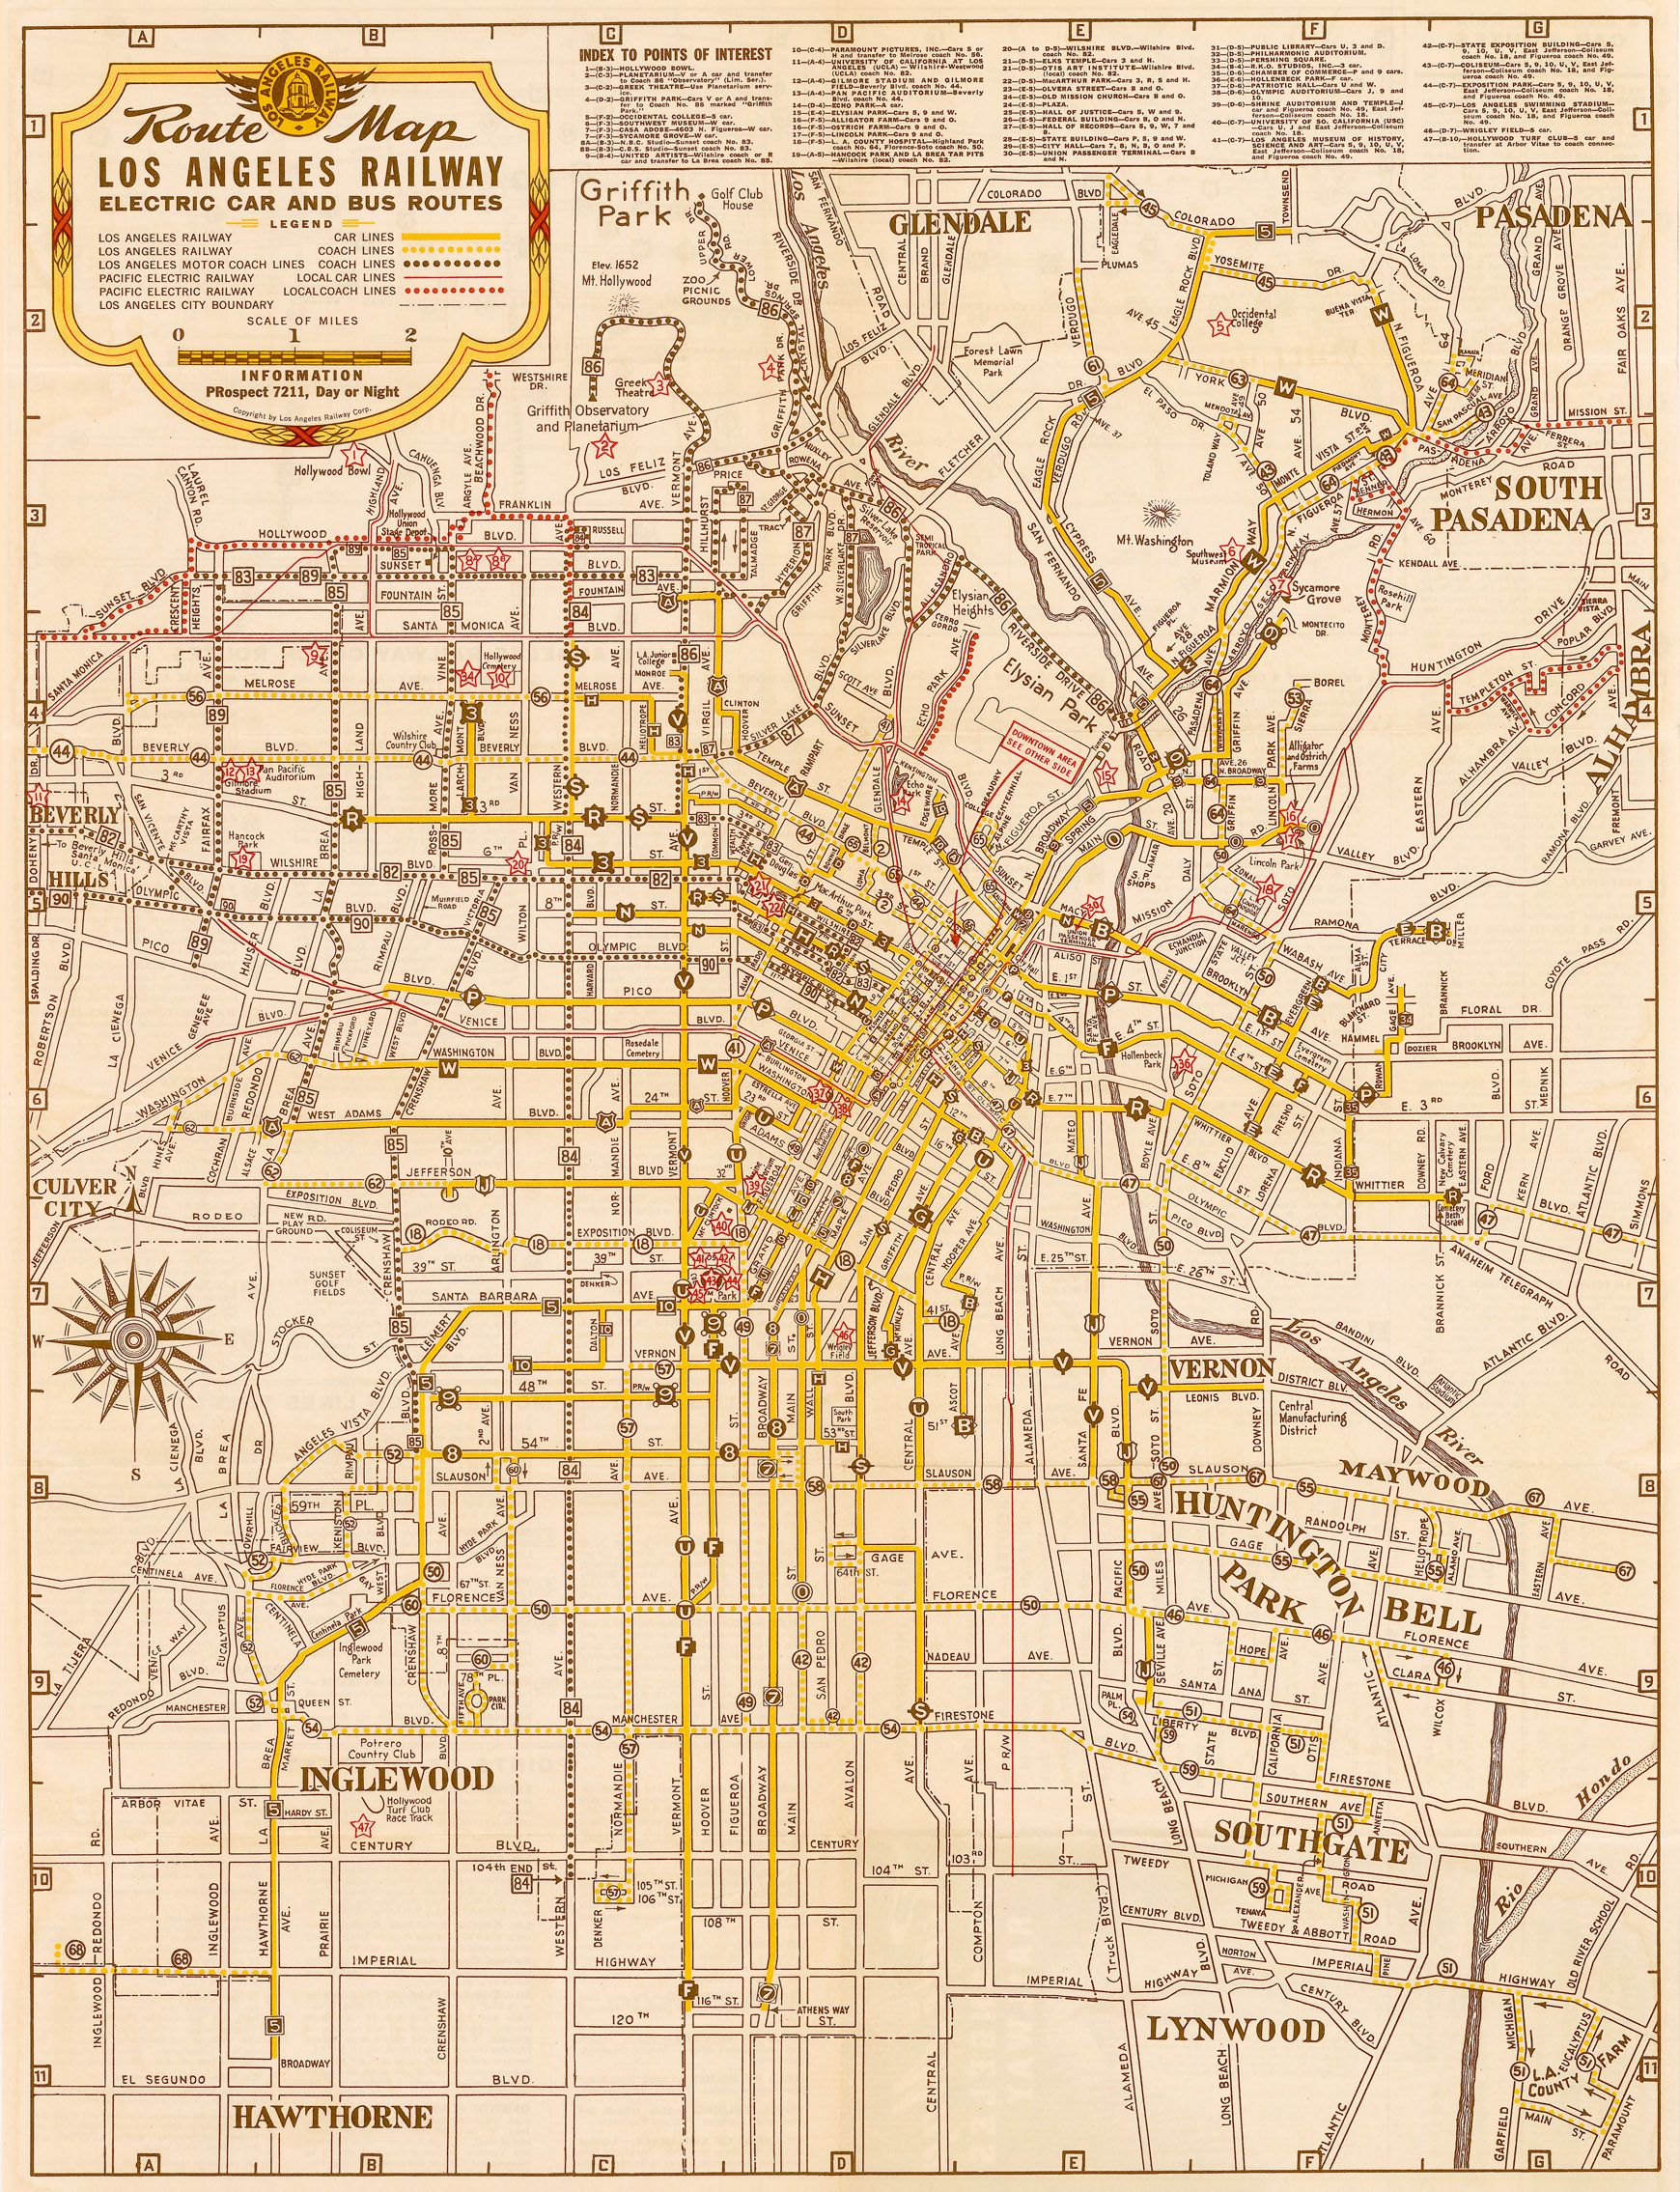 Route Map Los Angeles Railway Electric Car And Bus Routes - Los angeles route map